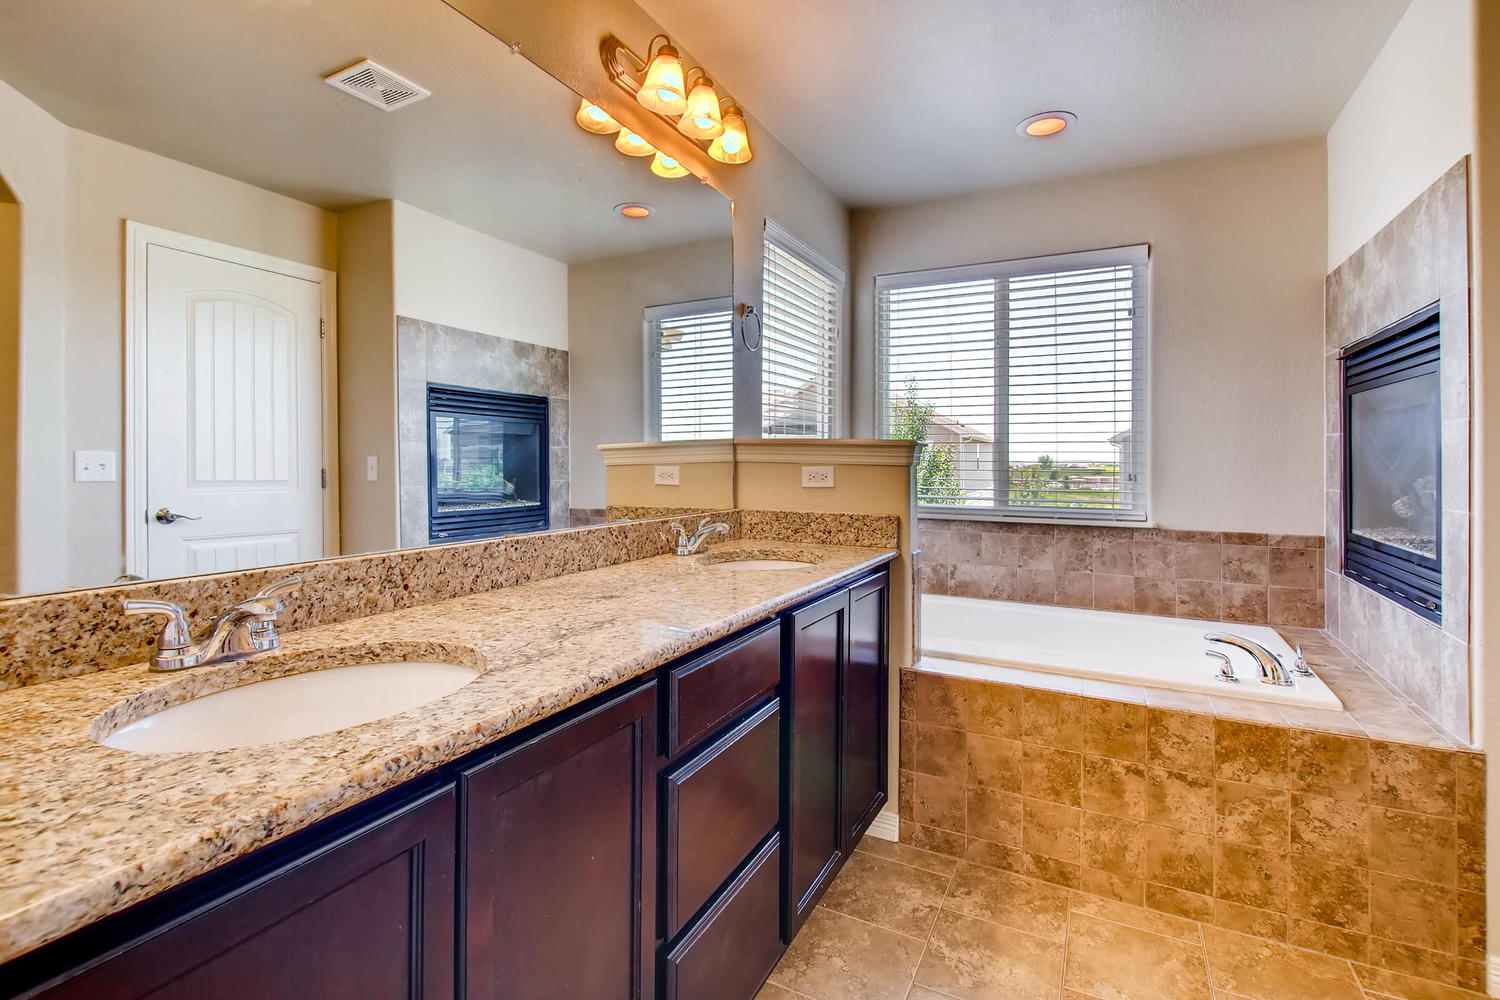 Photo of 408 Wind River Drive, Windsor, CO, 80550